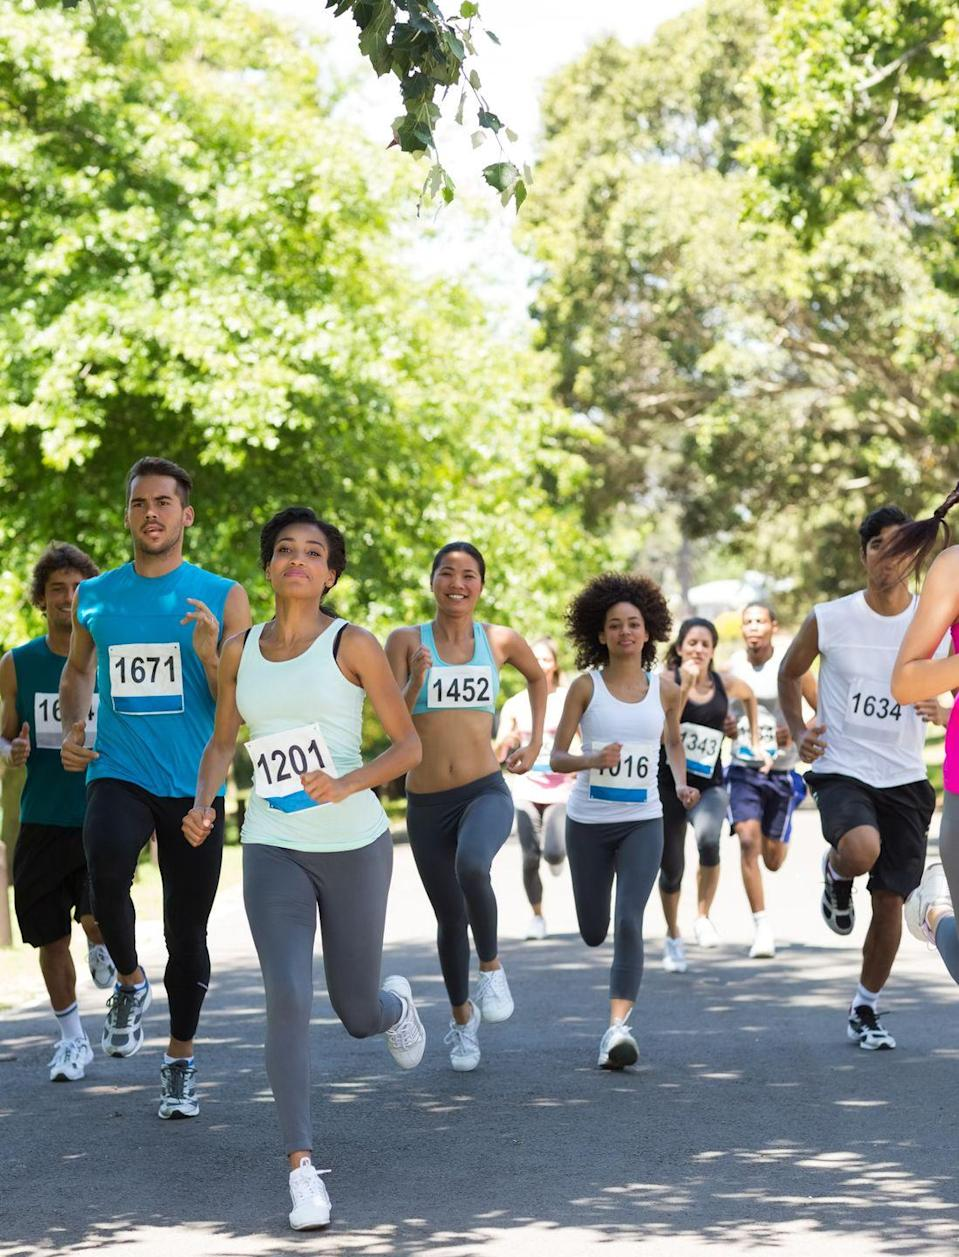 """<p>Lace up your sneakers and get ready to sweat before your big St. Patrick's Day party with a festive fun run. There are several races around the country you can participate in that allow for some friendly competition and charitable donations before the day's festivities.</p><p><a class=""""link rapid-noclick-resp"""" href=""""https://www.amazon.com/LERMX-Quick-Handheld-Bottle-Hydration/dp/B06Y1G3MKG/?tag=syn-yahoo-20&ascsubtag=%5Bartid%7C10050.g.30796247%5Bsrc%7Cyahoo-us"""" rel=""""nofollow noopener"""" target=""""_blank"""" data-ylk=""""slk:SHOP REUSABLE WATER BOTTLES"""">SHOP REUSABLE WATER BOTTLES</a></p>"""